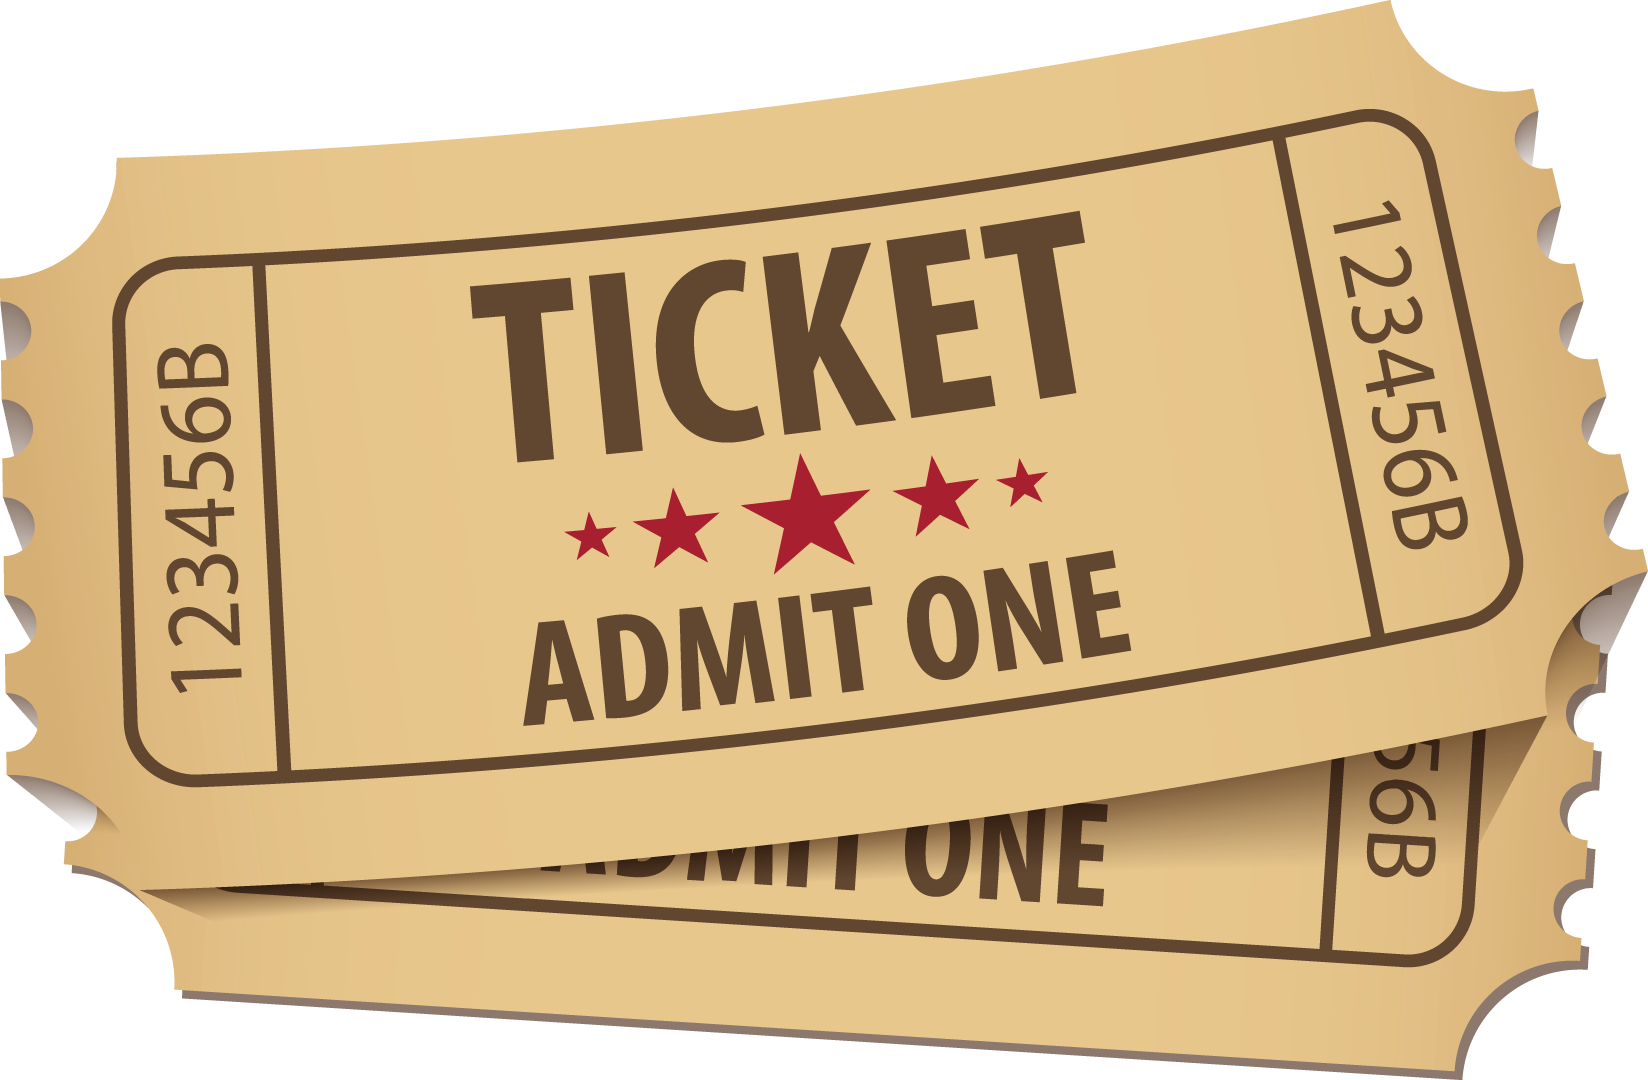 Ticket clipart admit one. Png free download mart